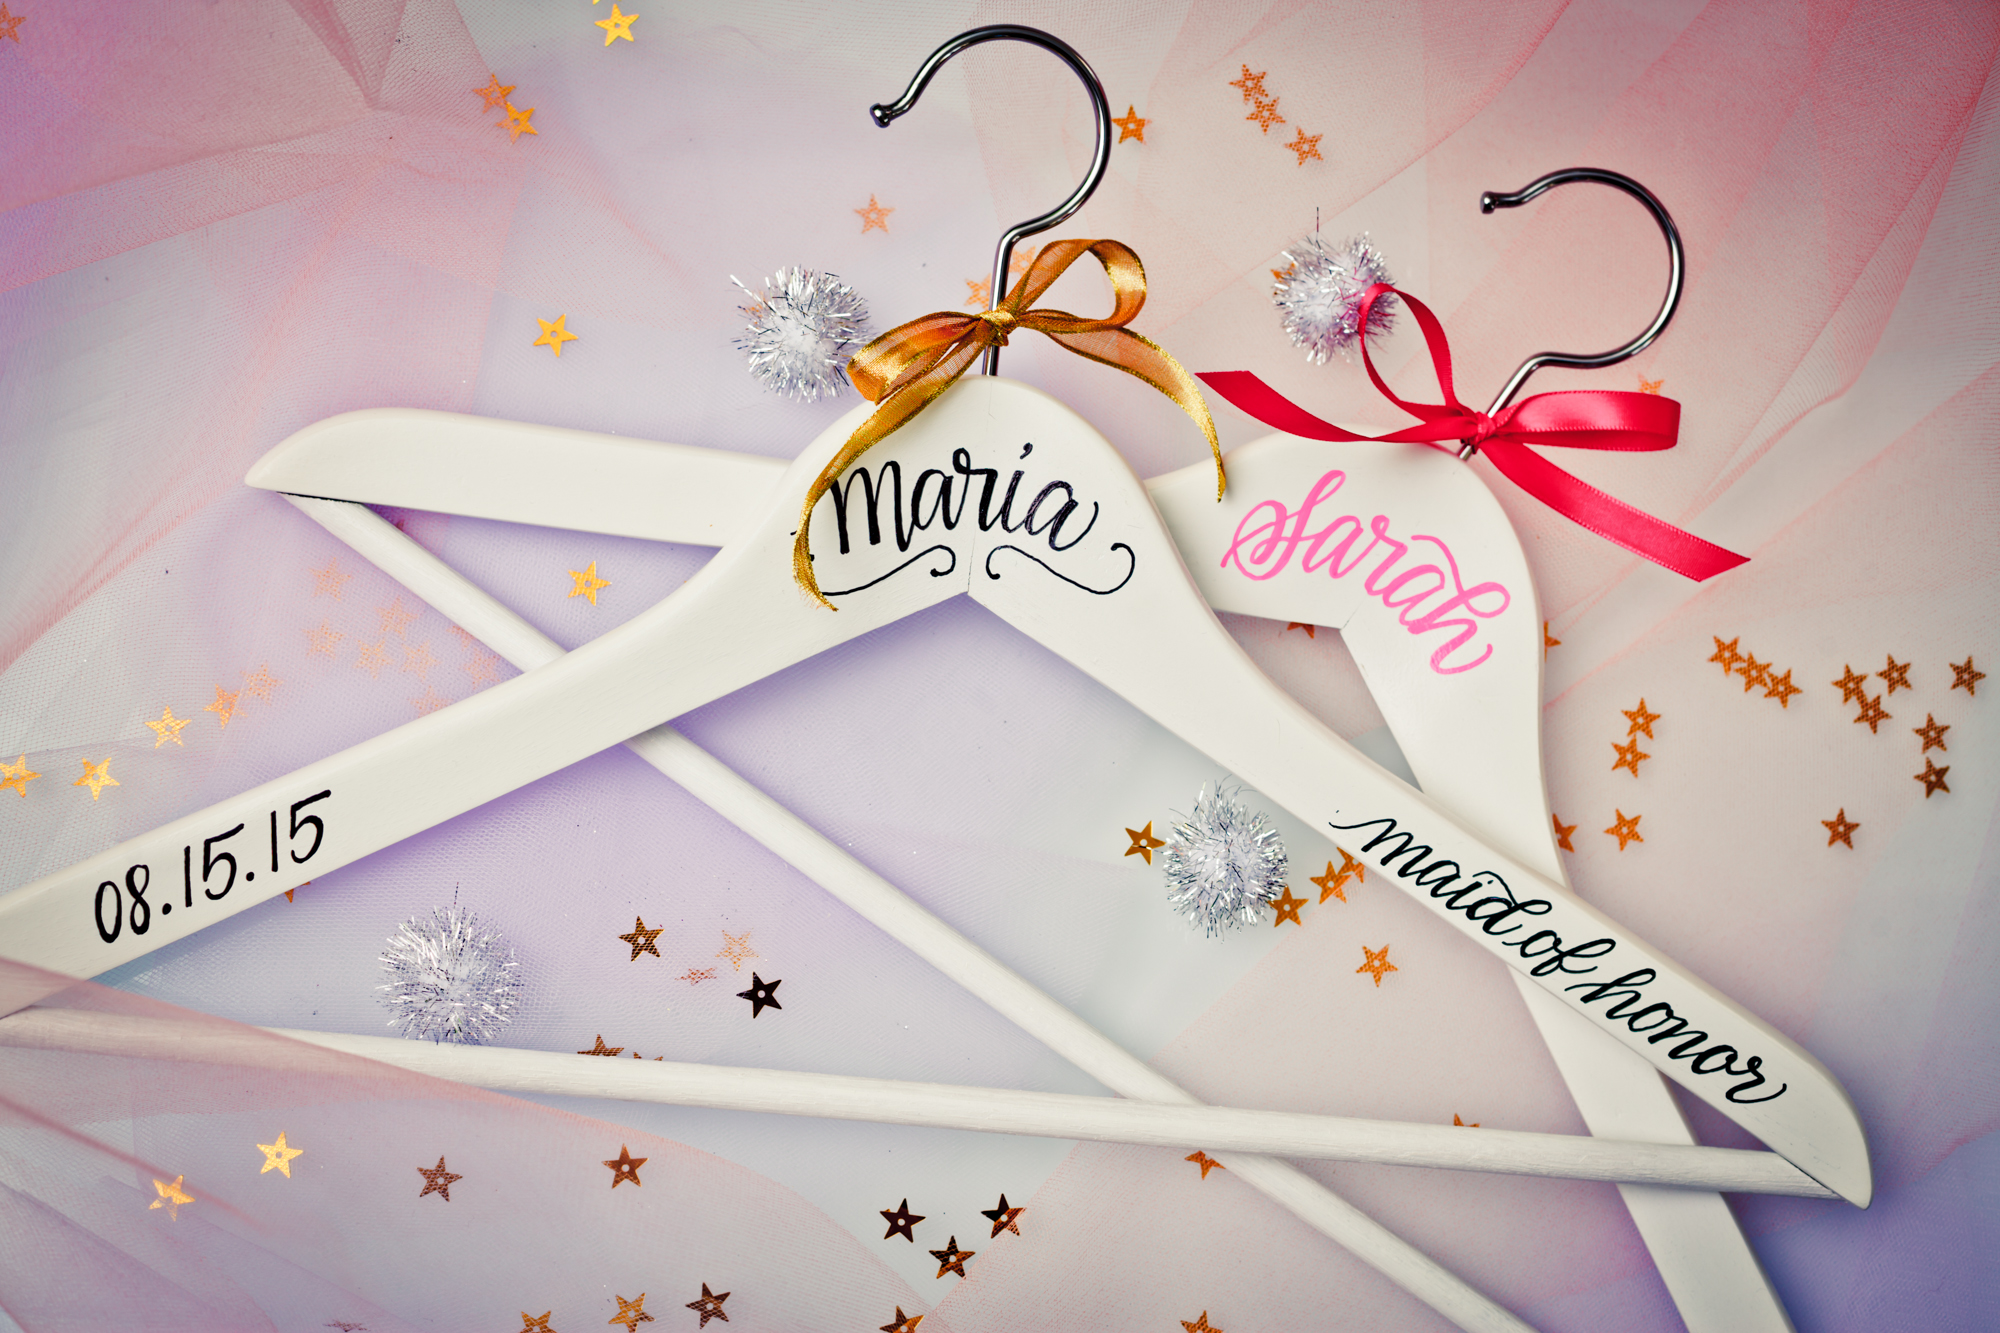 Personalized Calligraphy Hangers-www.thedetaileddiva.com.jpg